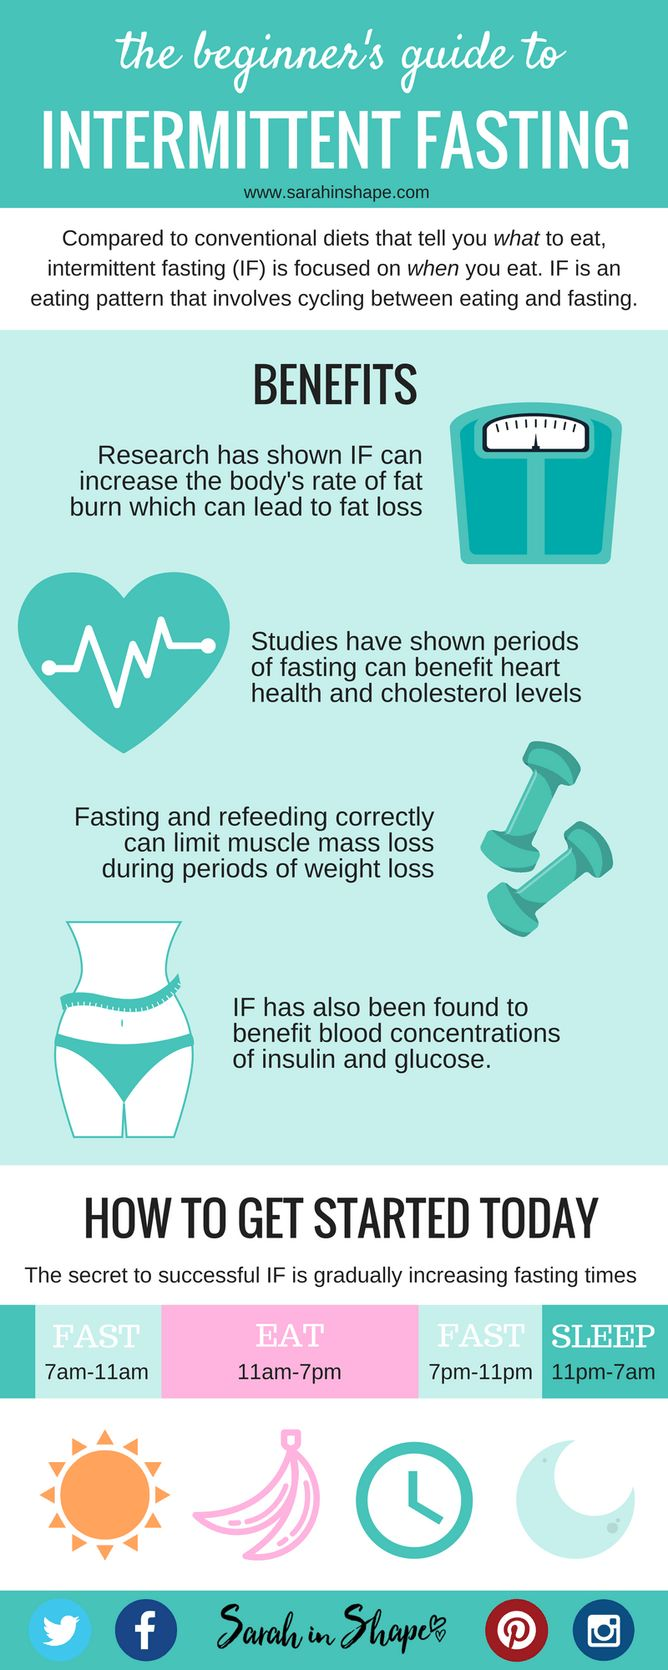 The Beginner's Guide to Intermittent Fasting for Fat Loss + FREE cheat sheet download